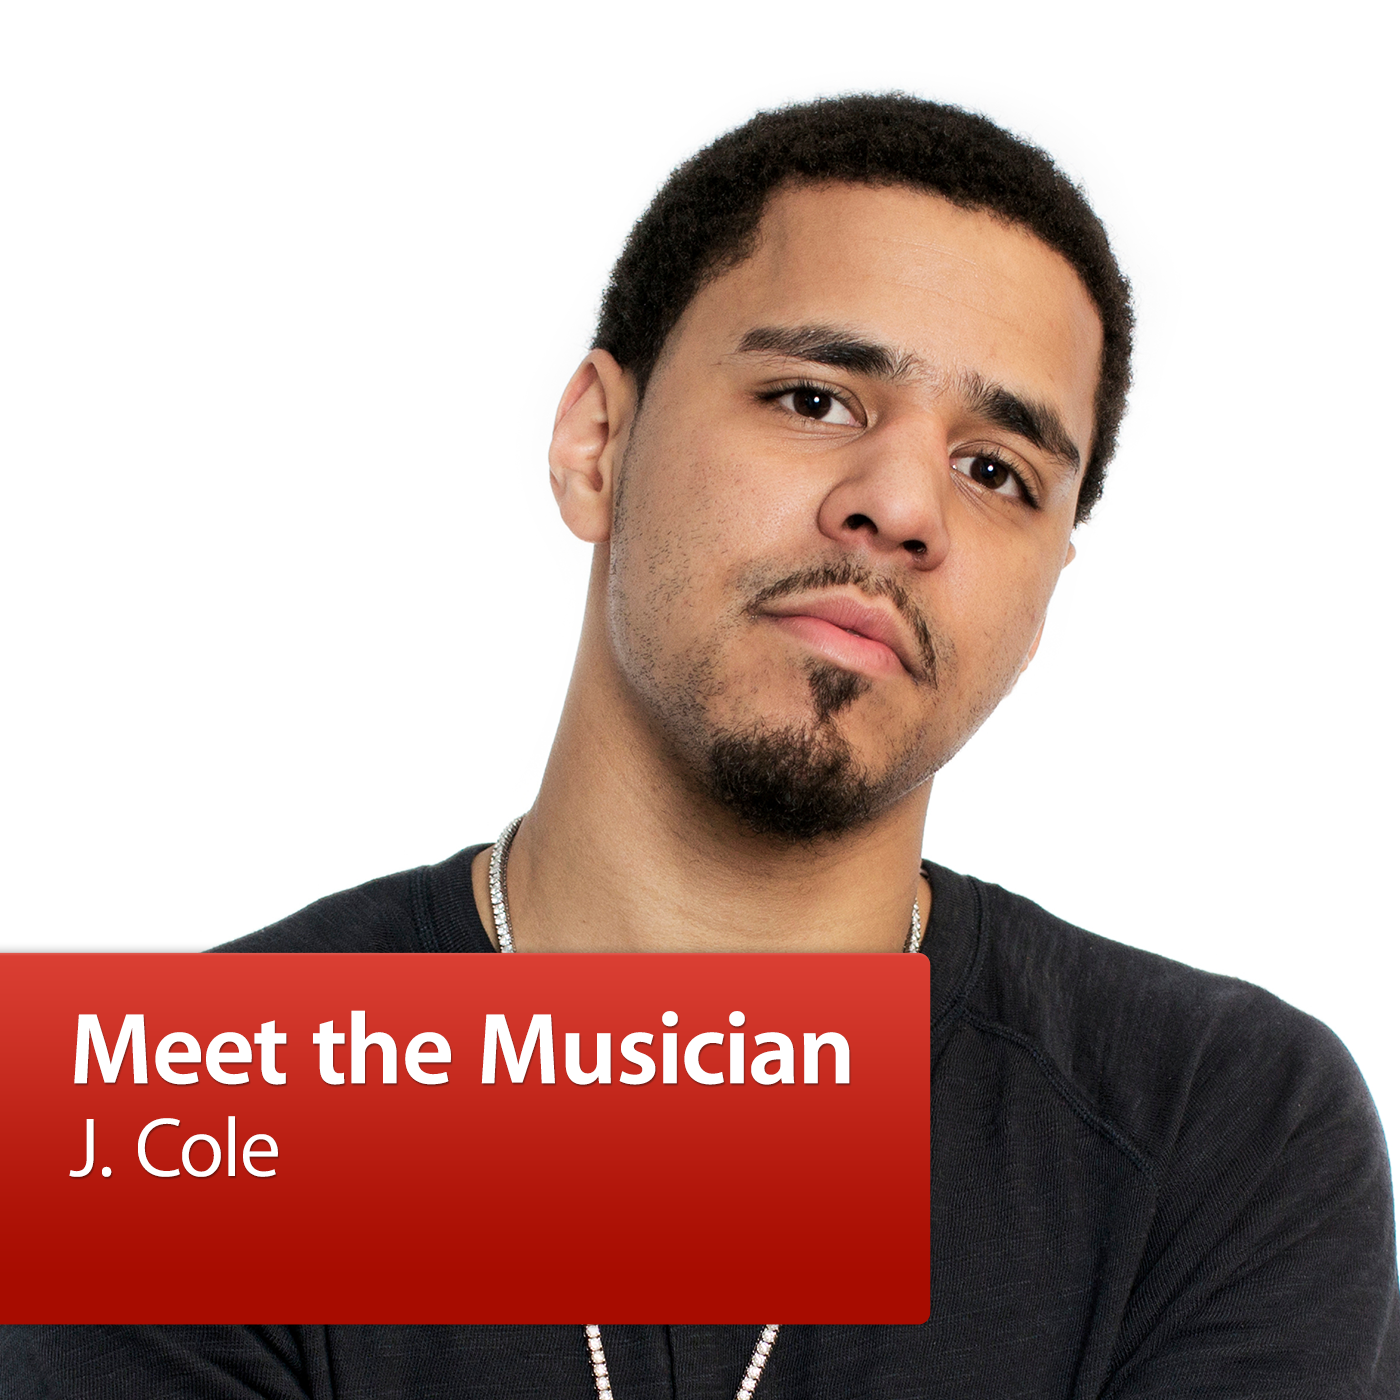 J. Cole: Meet the Musician